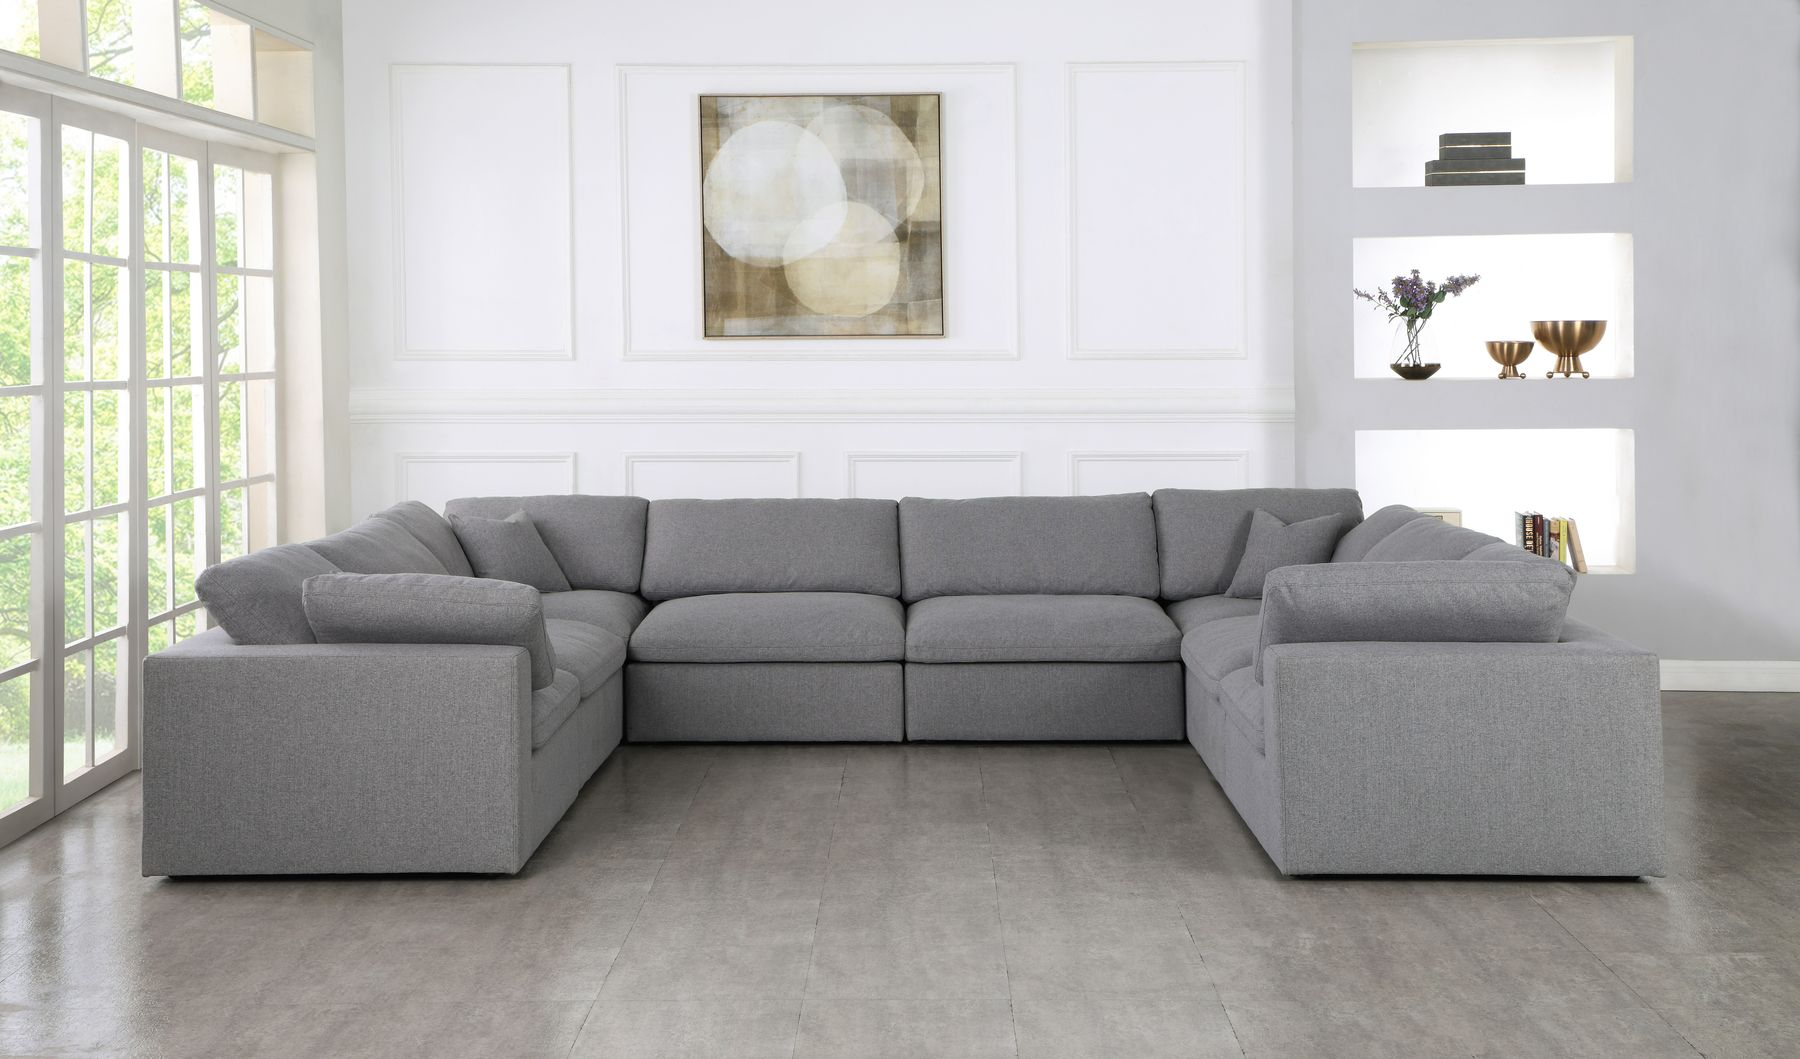 Serene 8a Gray Sectional Sofa In 2020 Sectional Sofa Grey Sectional Sofa Modular Design